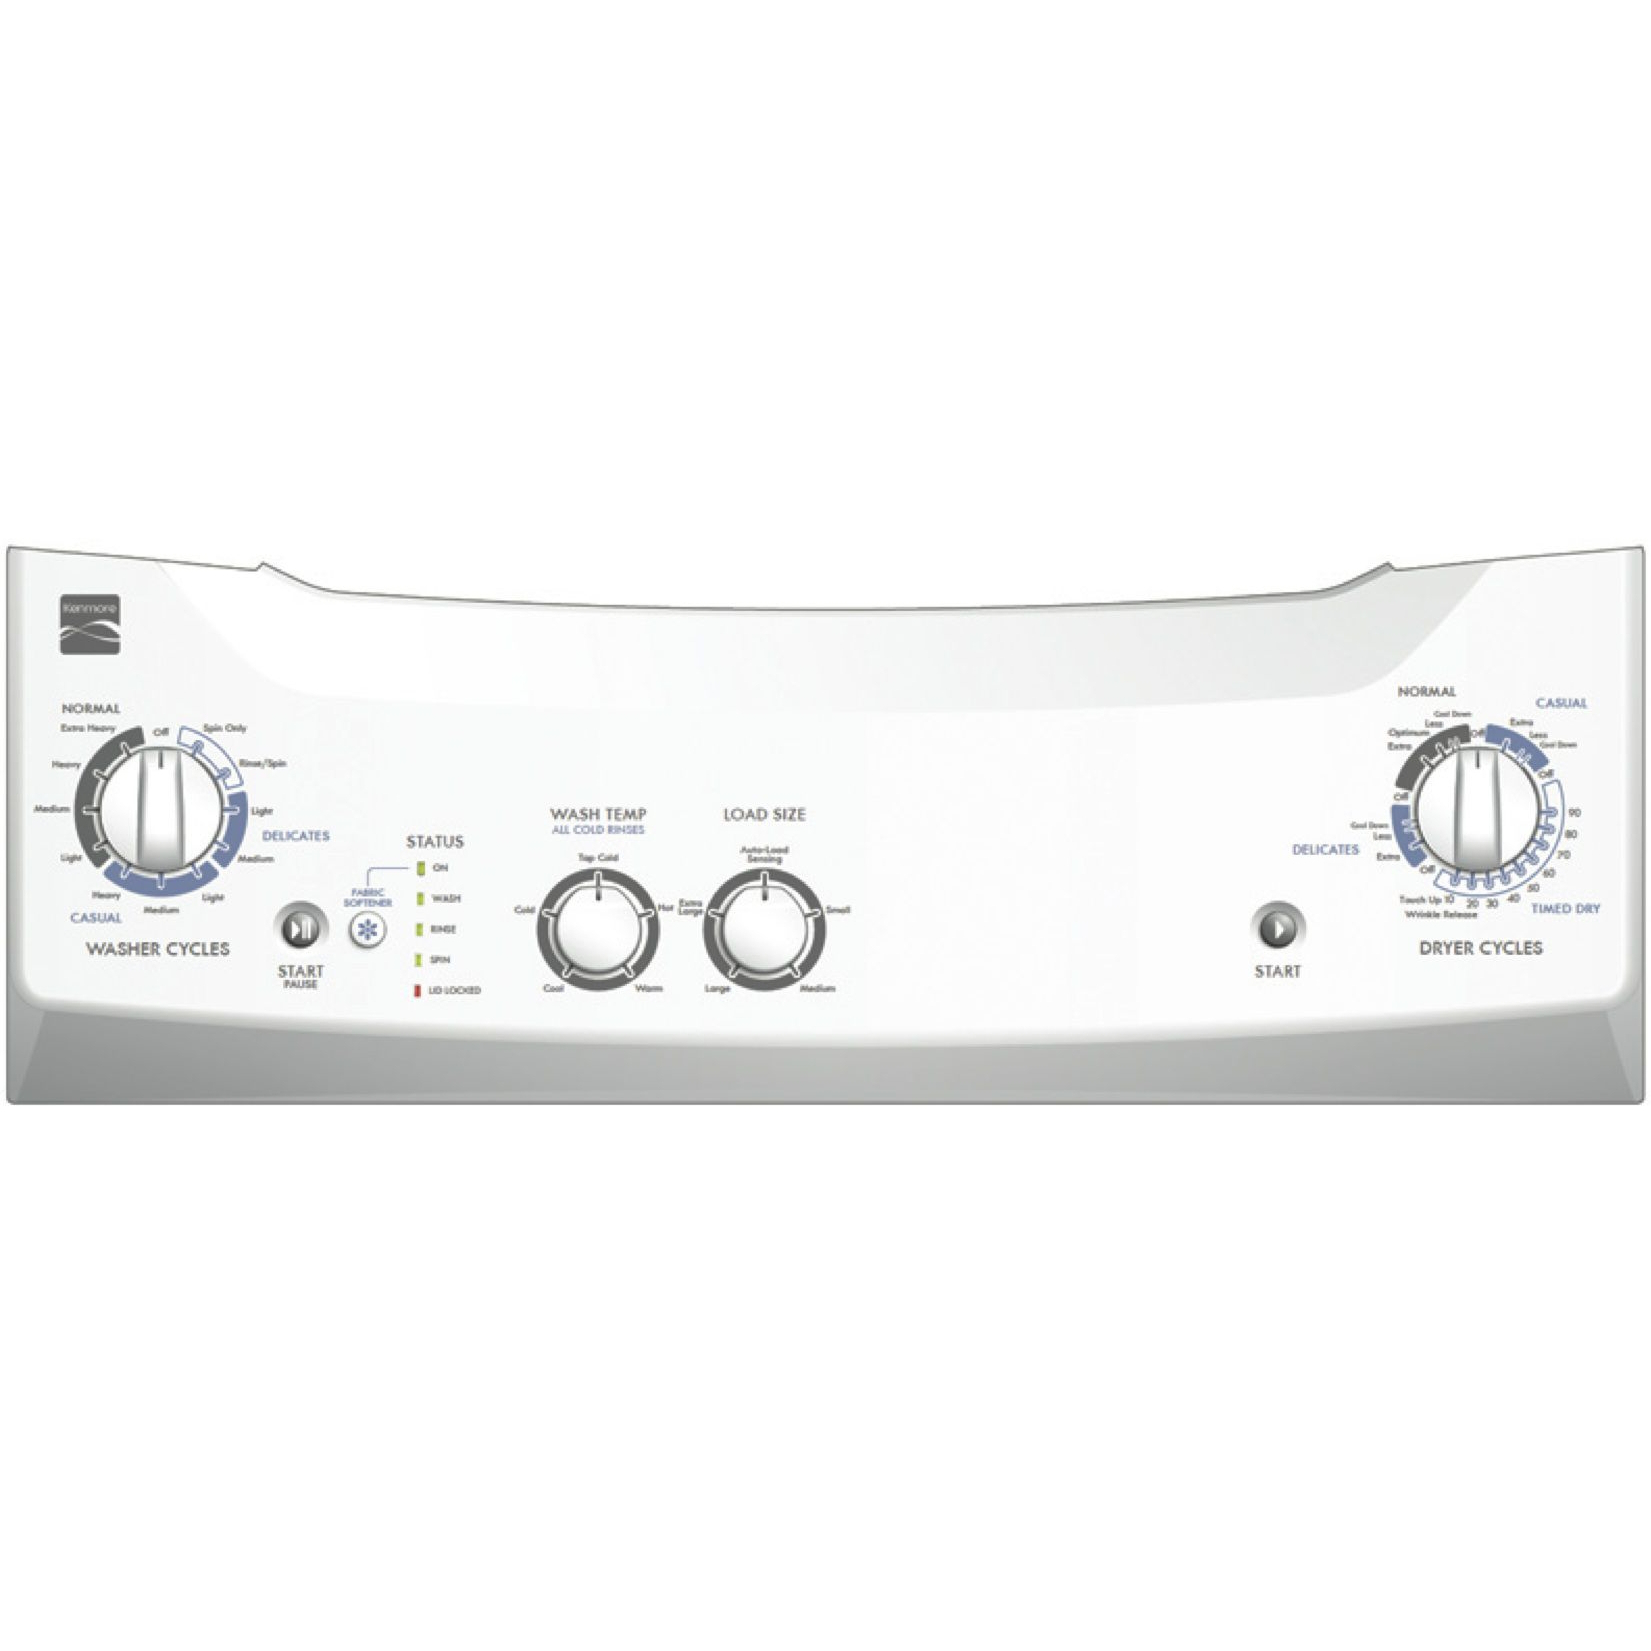 "Kenmore 27""  Laundry Center w/ Gas Dryer"